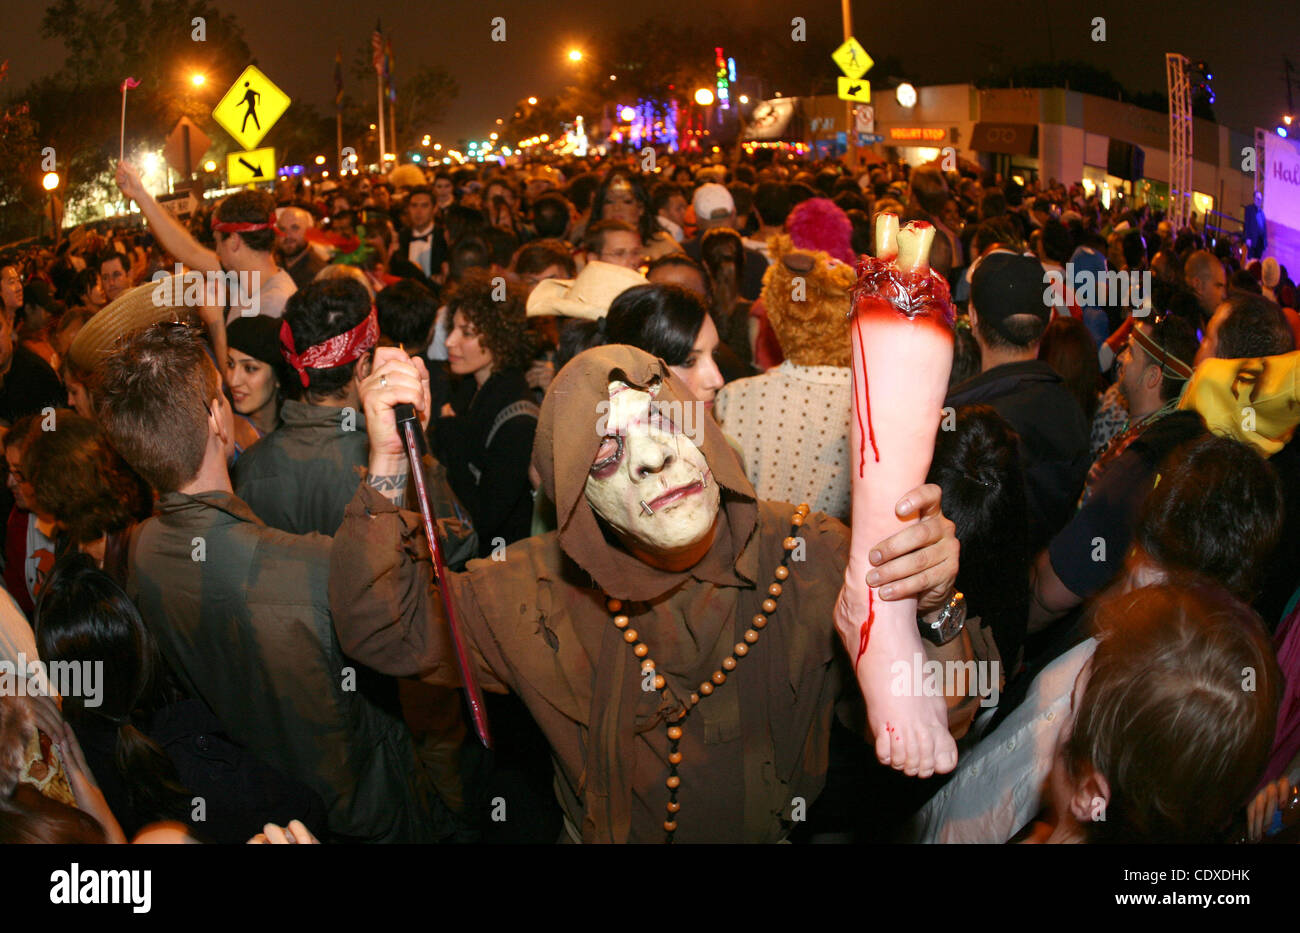 Oct. 31, 2011 - Los Angeles, California, U.S. - Halloween revelers ...